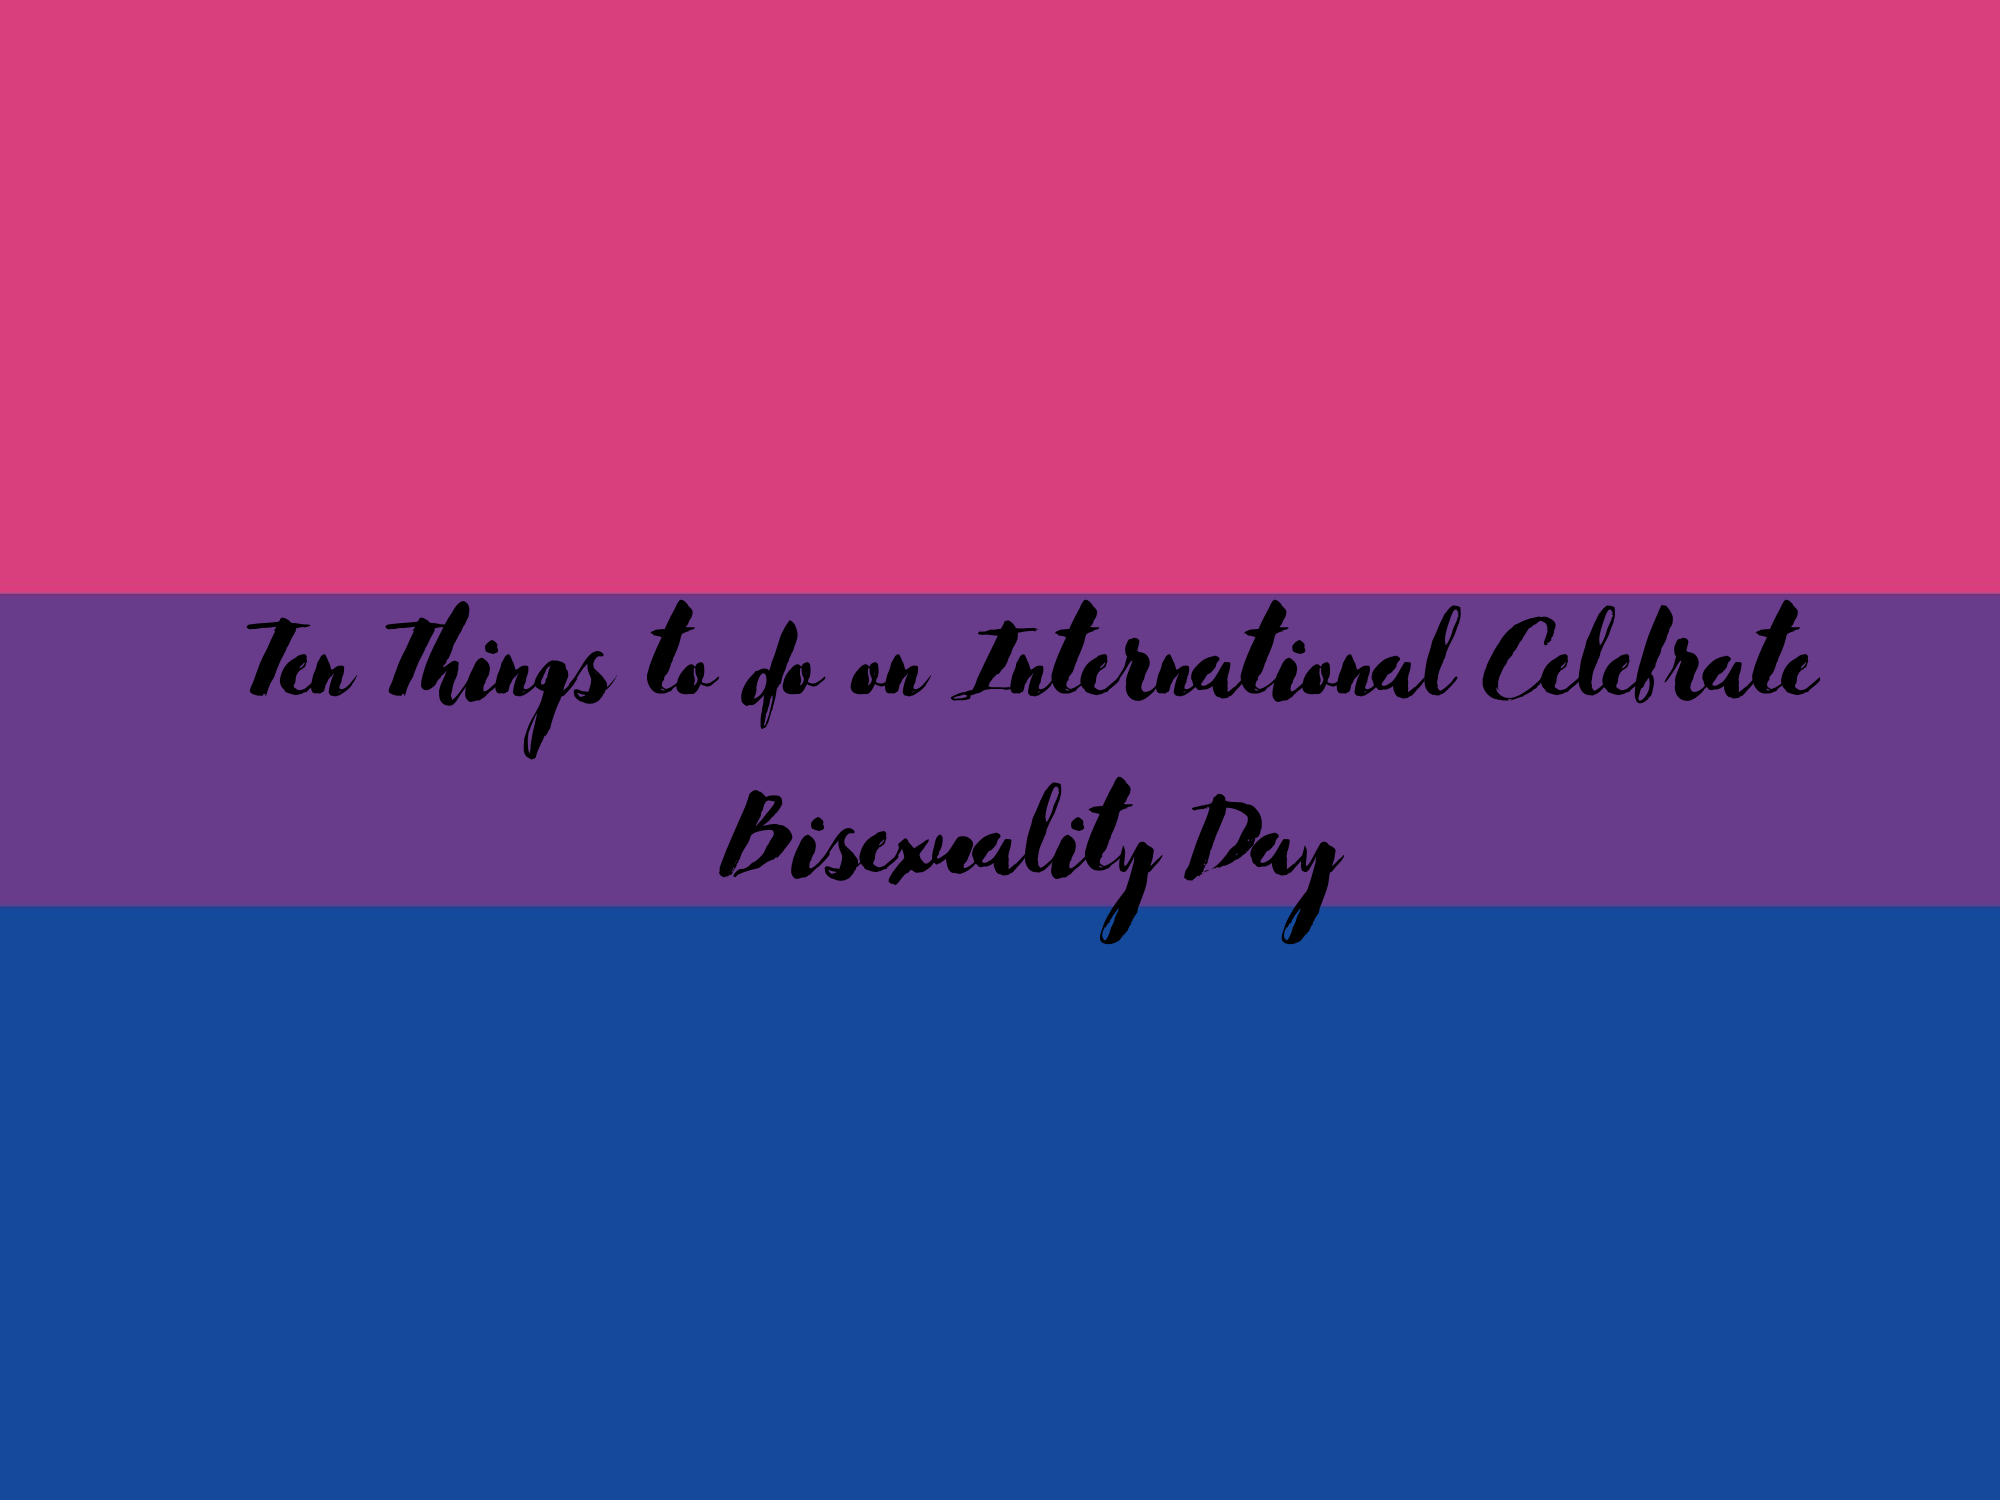 Ten Fun or Meaningful Things to Do On International Celebrate Bisexuality Day